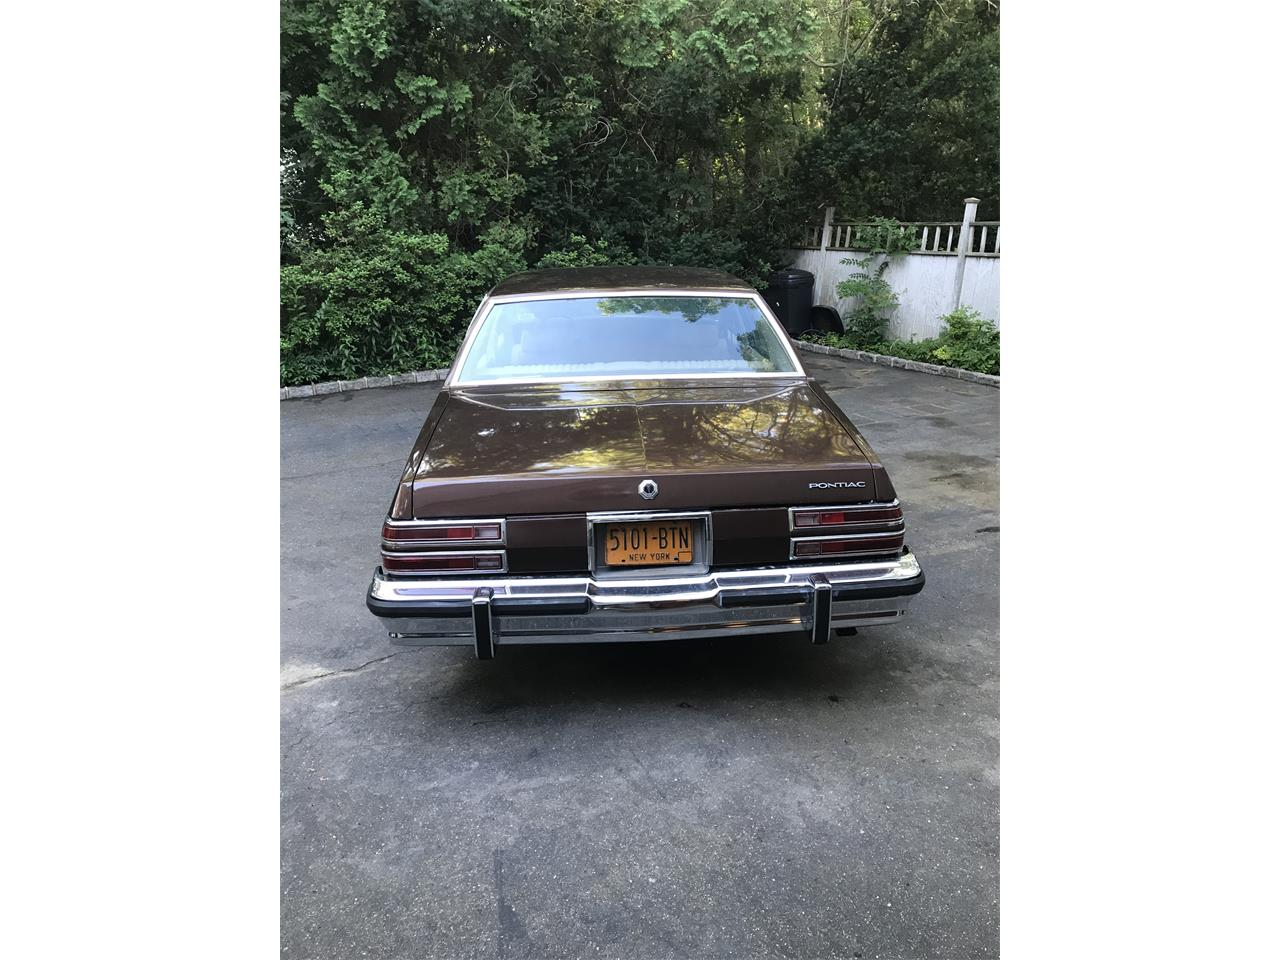 Large Picture of 1977 Pontiac Catalina located in New York - $19,500.00 Offered by a Private Seller - LHWC